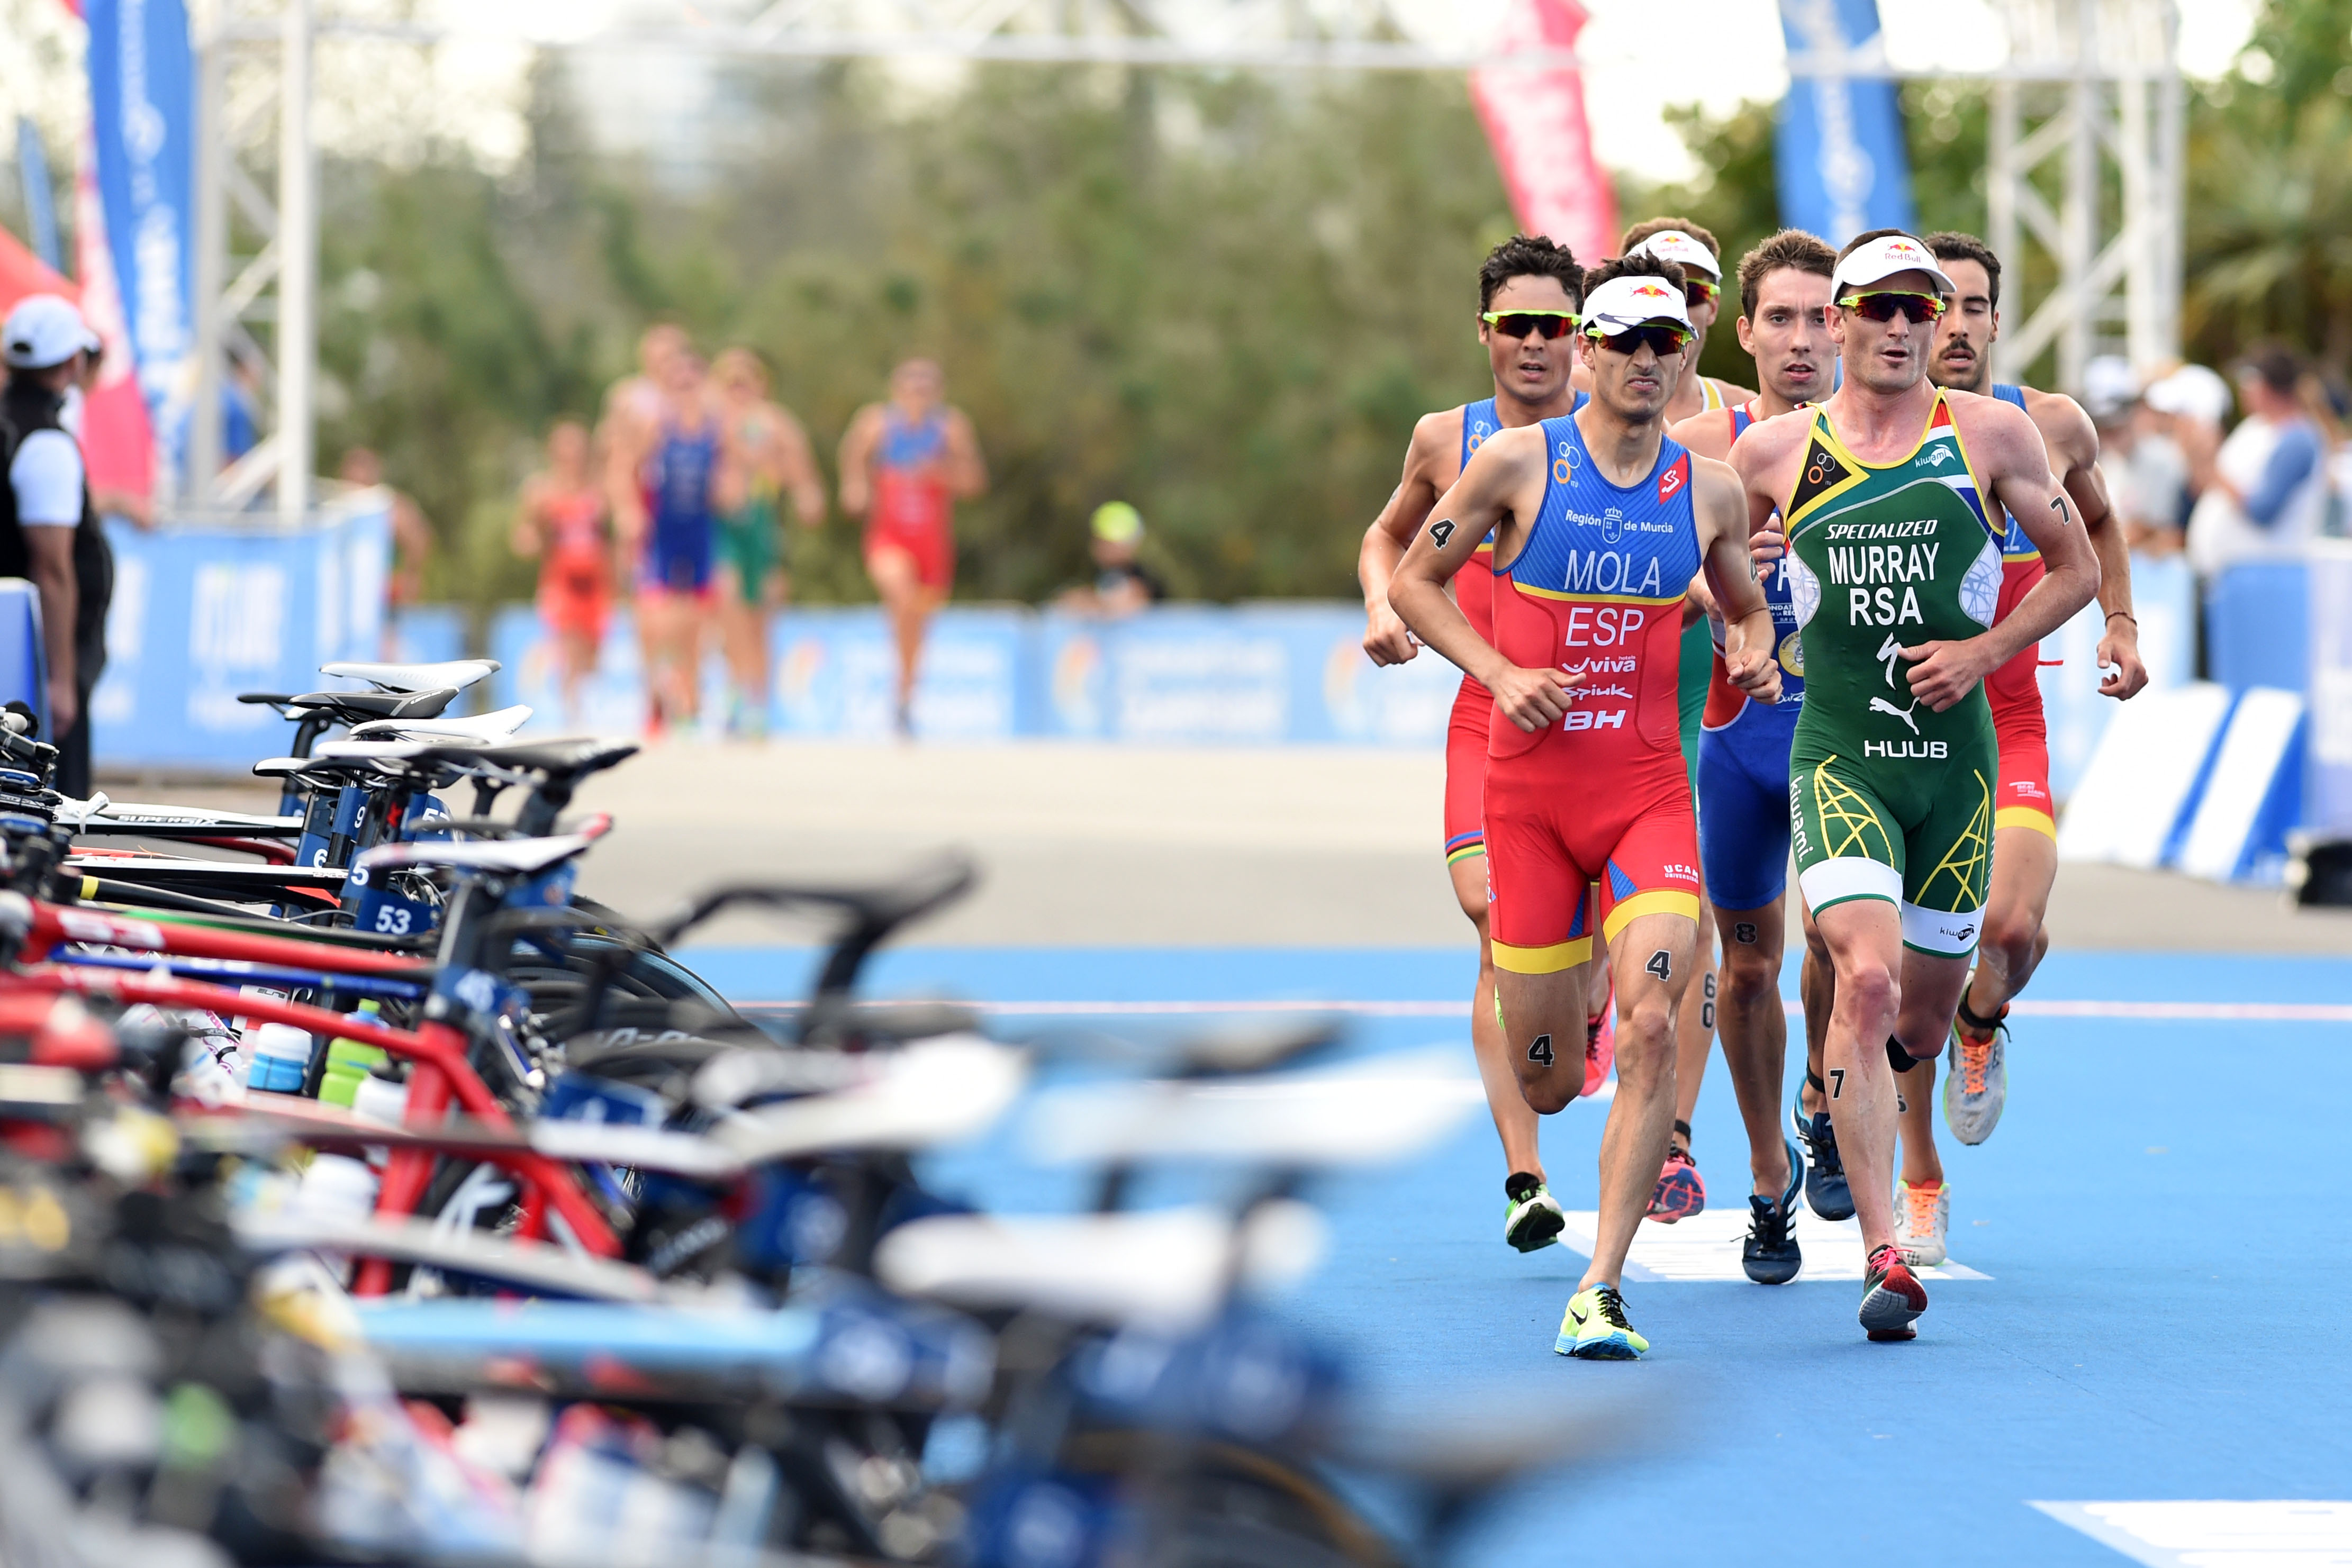 Hometown hero Murray is aiming high at WTS event in Cape Town